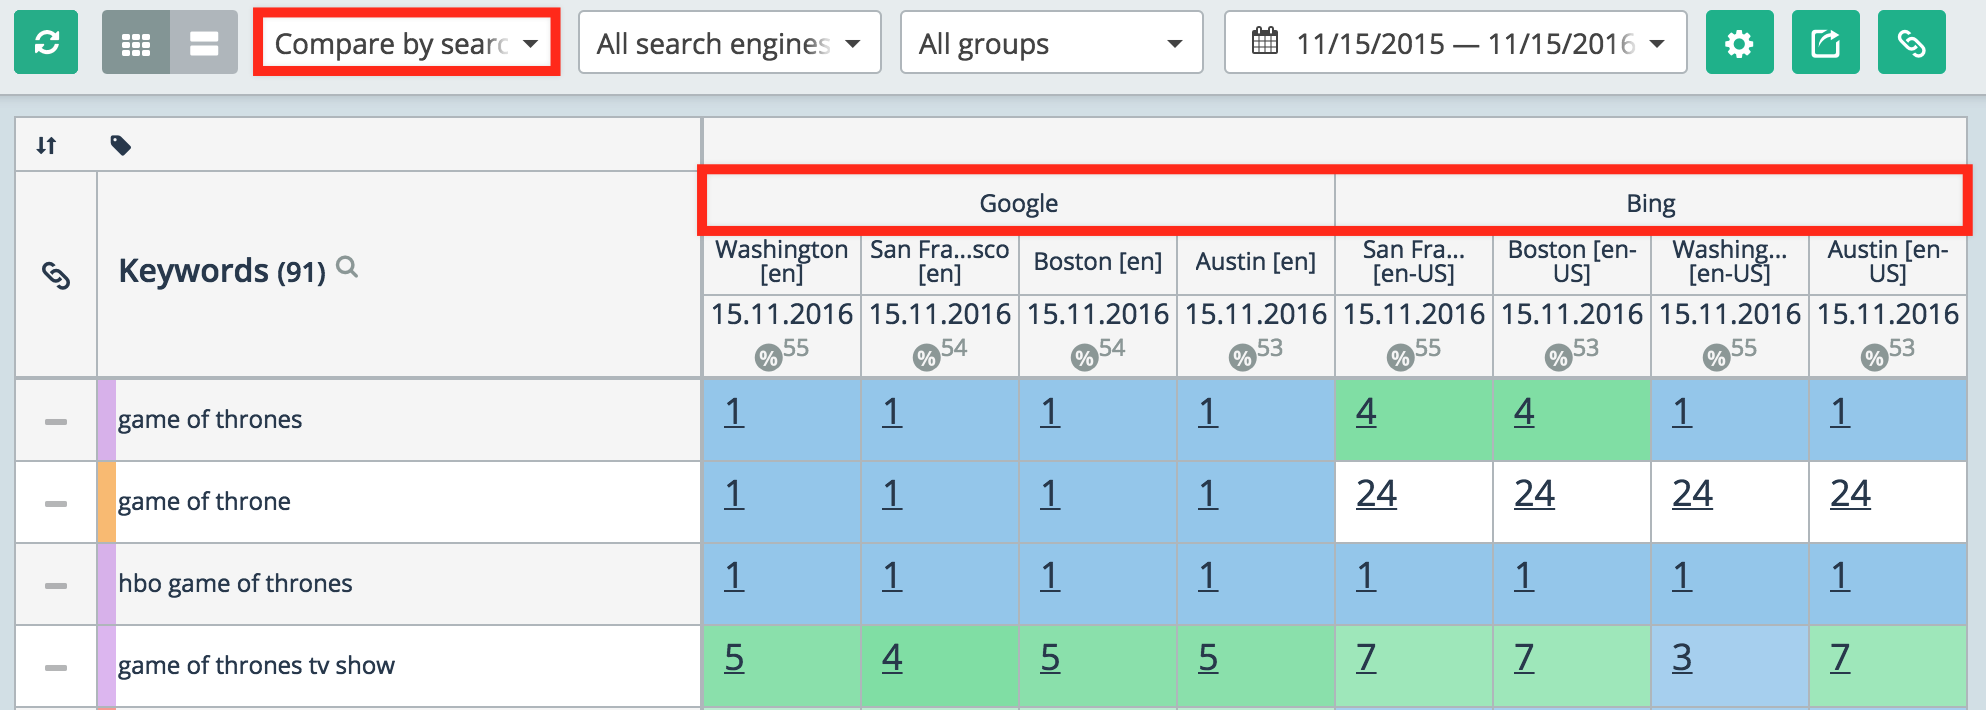 Compare rankings by search engine